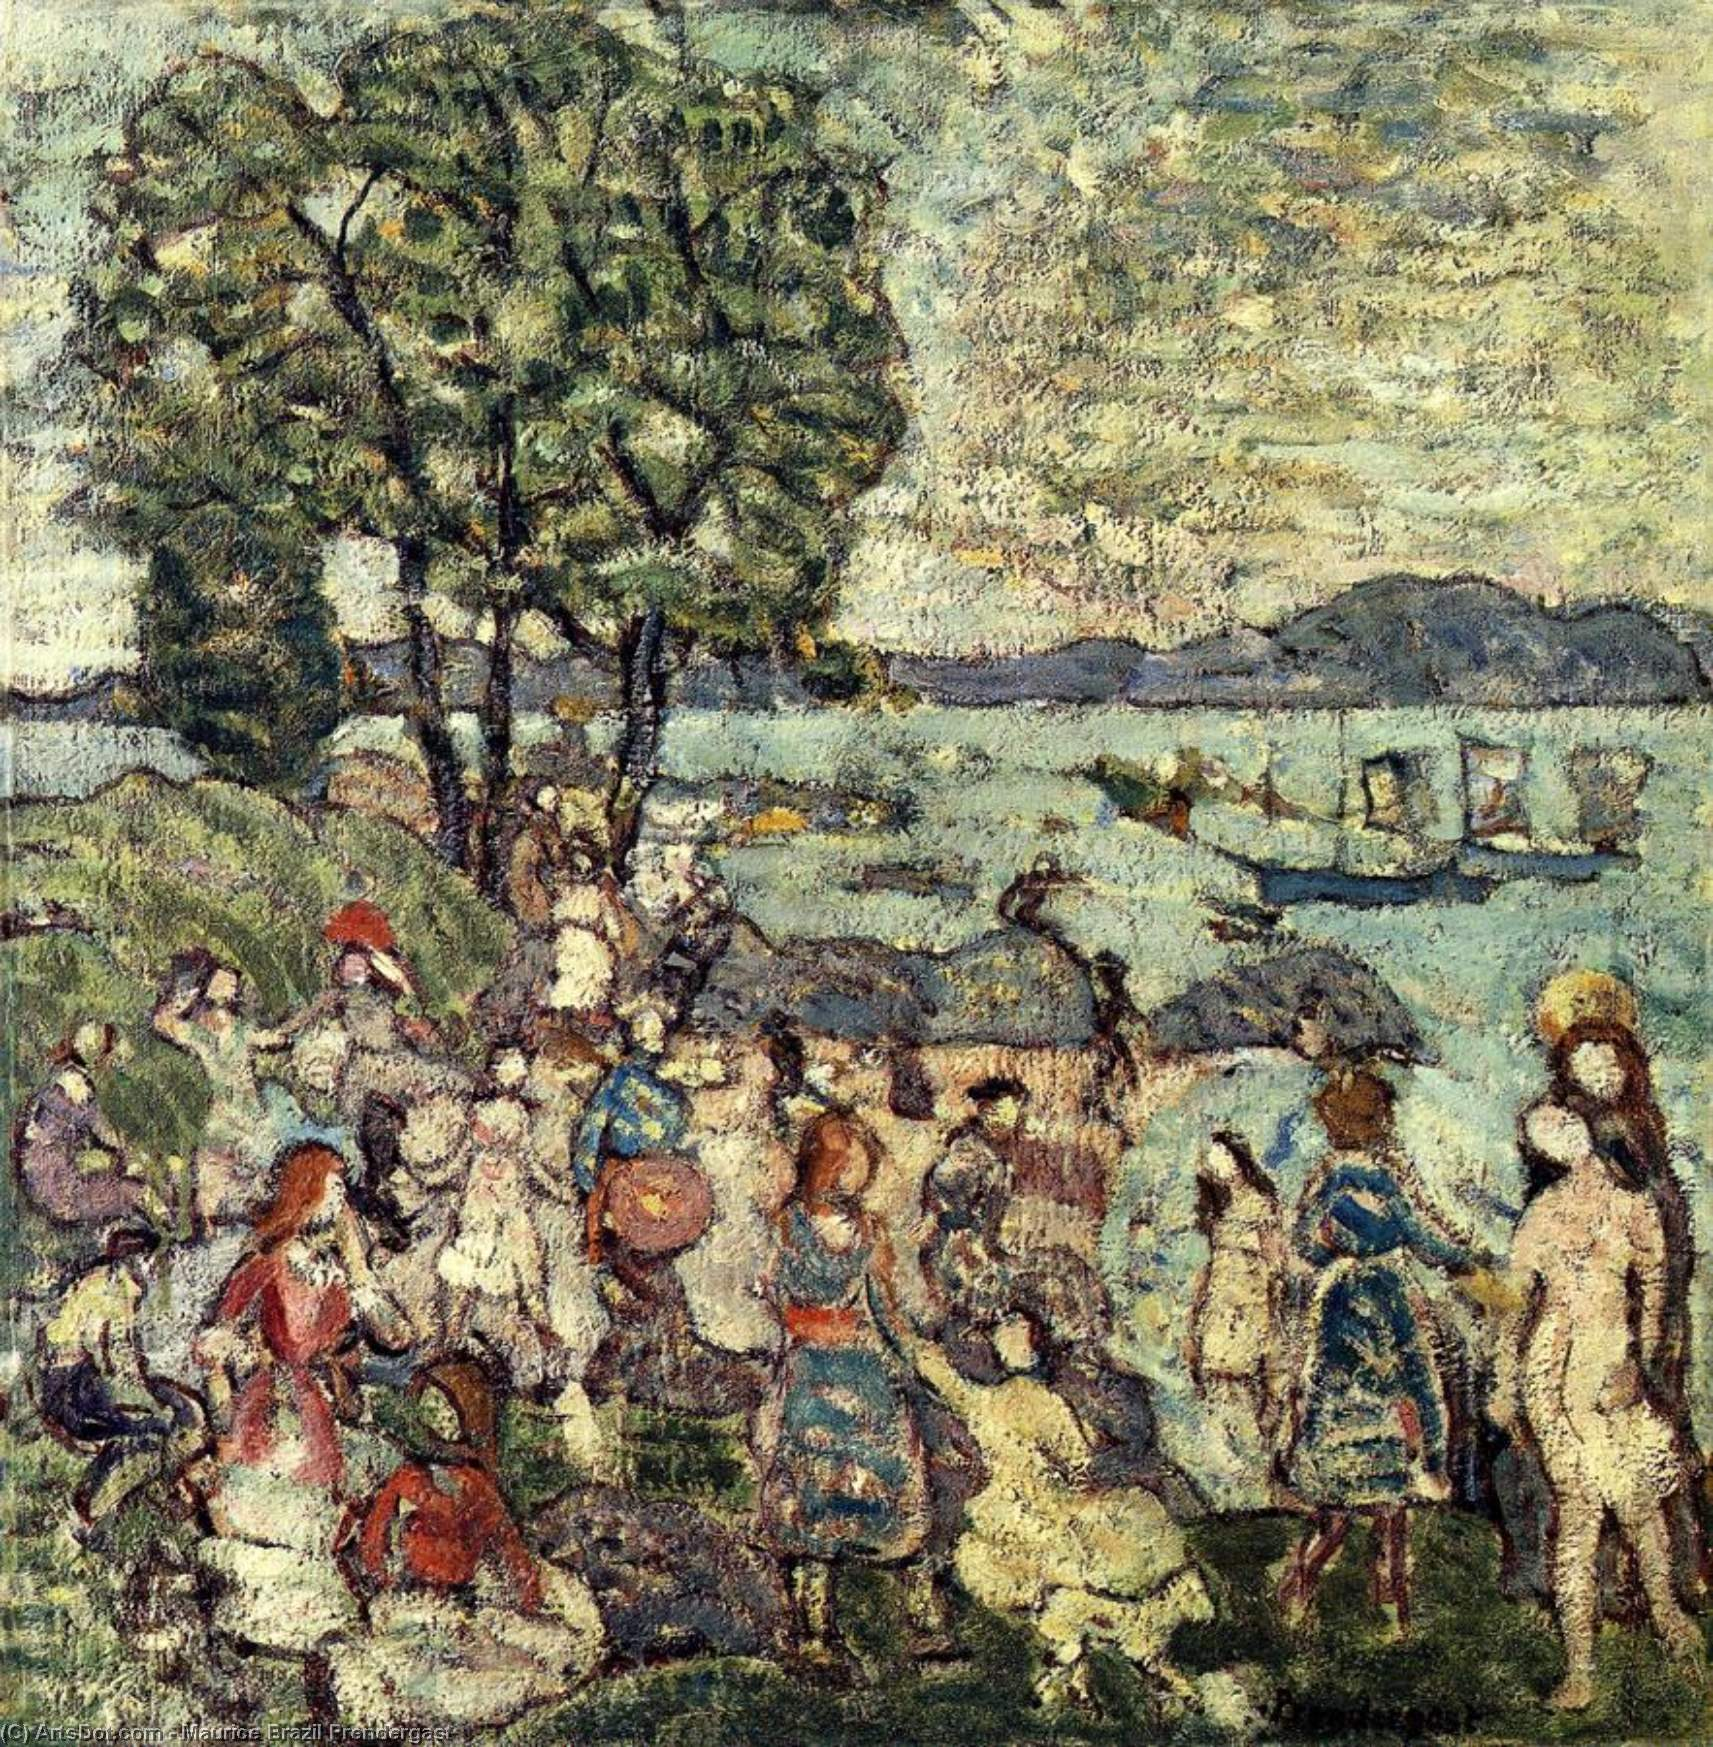 Wikioo.org - The Encyclopedia of Fine Arts - Painting, Artwork by Maurice Brazil Prendergast - The Bathing Cove